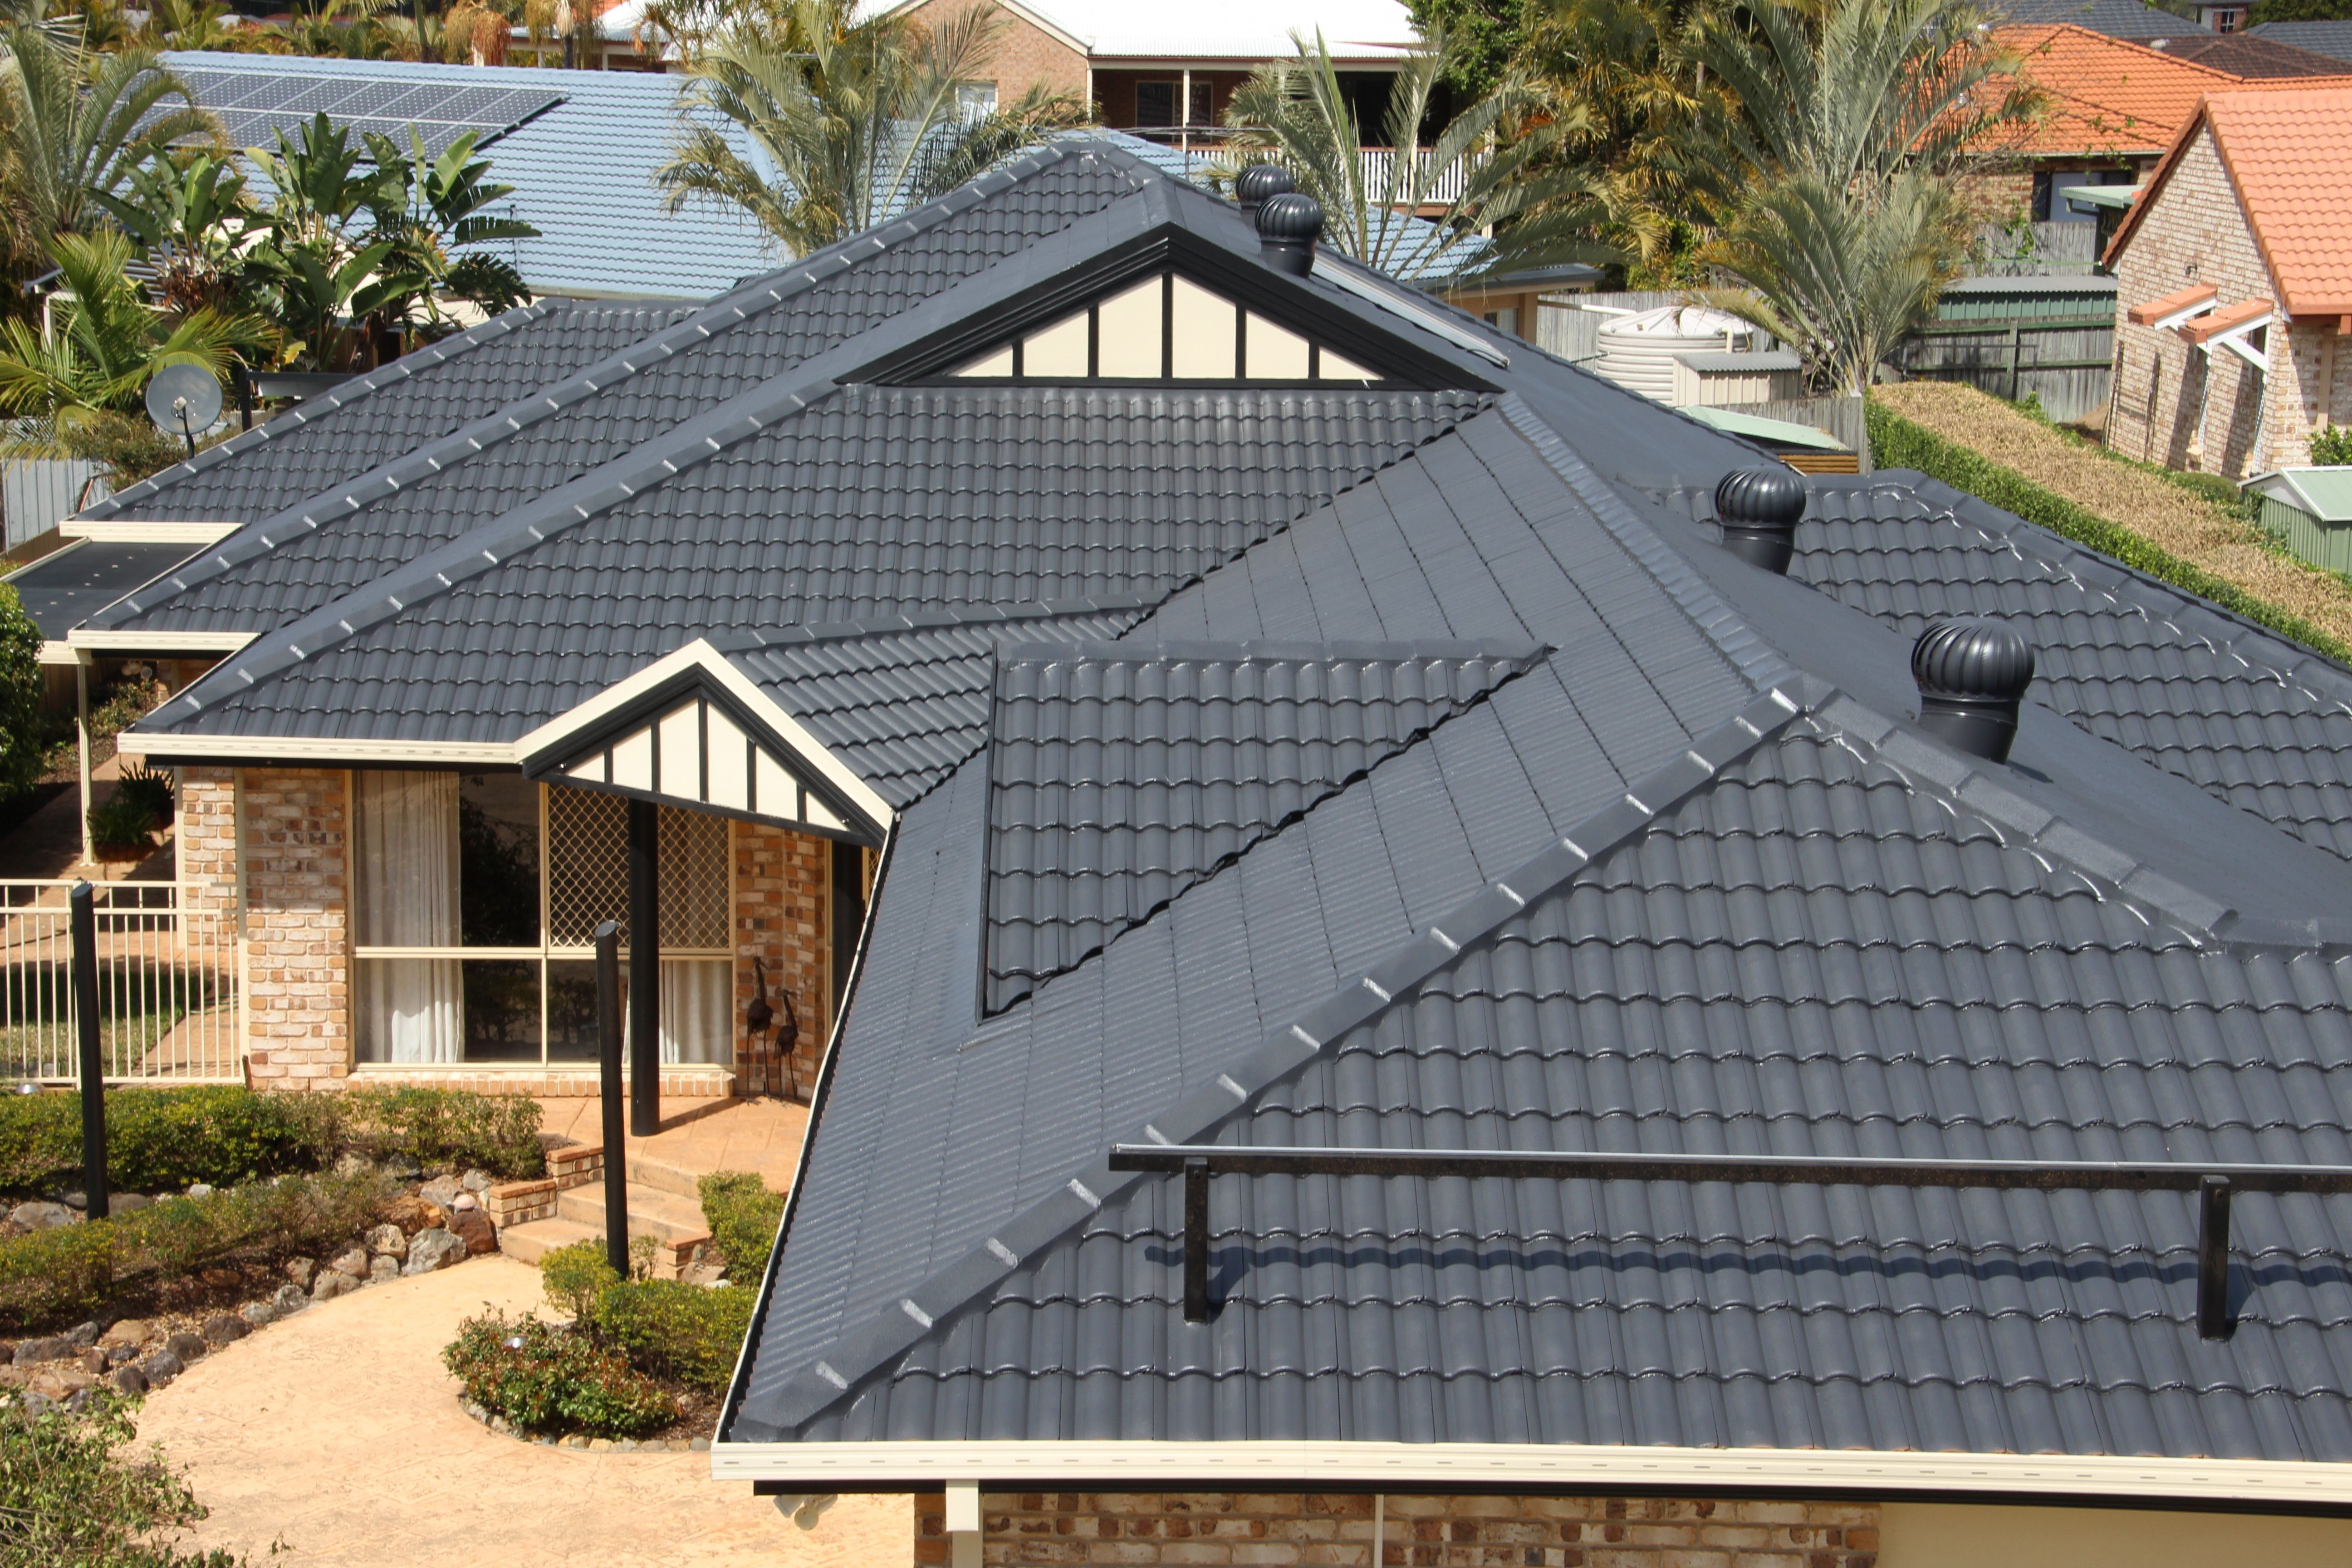 Finished In Colour Charcoal Diy Renovation Roofing Painting Exteriors Roof Restoration Painting Tile Renovations